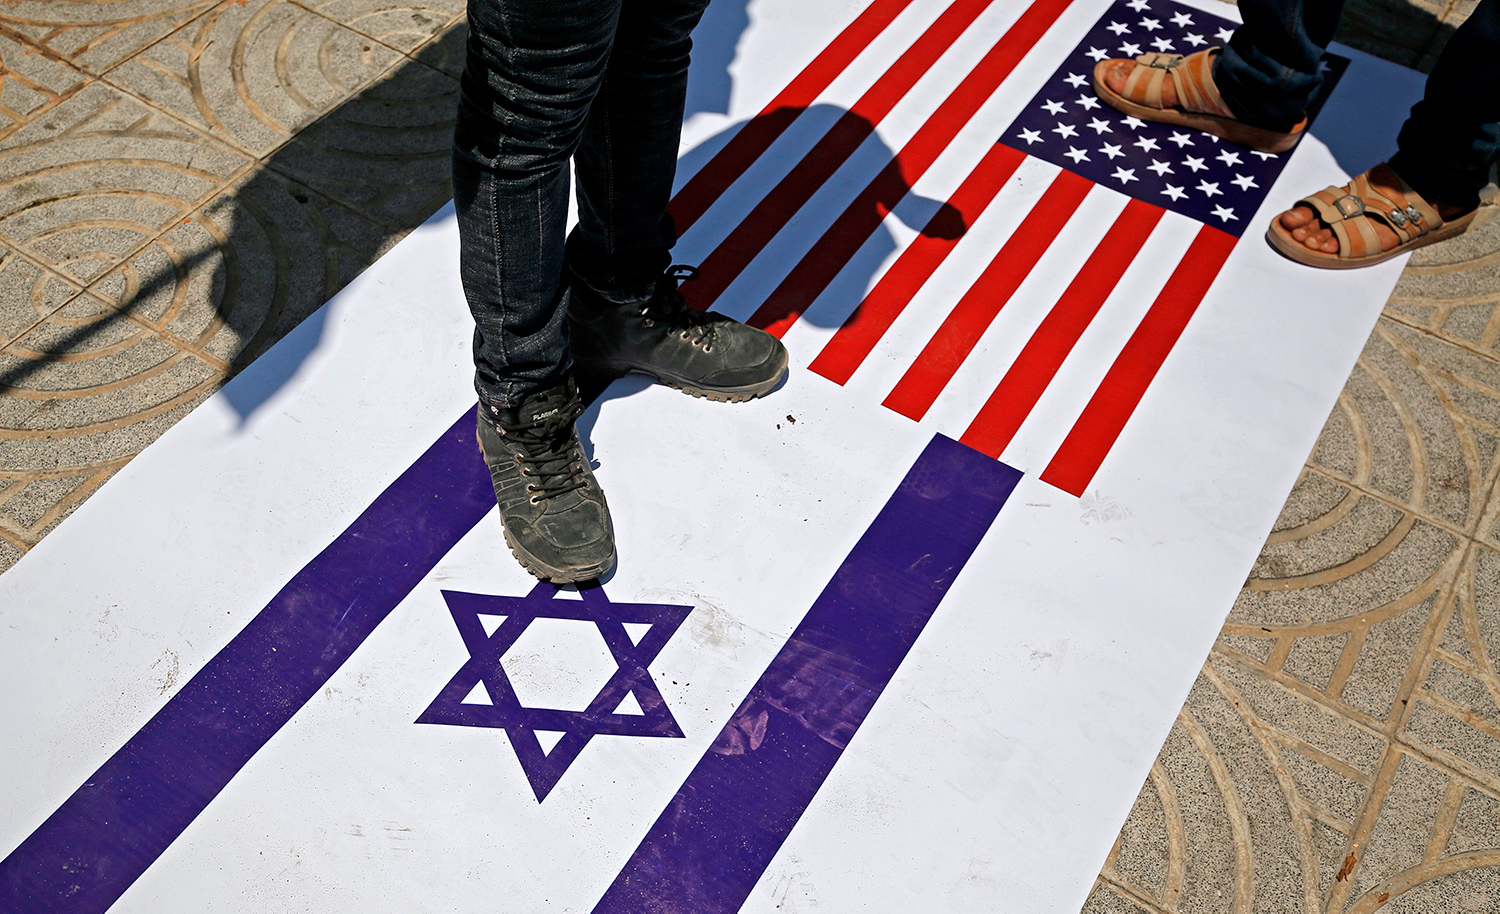 Palestinians trample a poster on the ground depicting the flags of Israel and the US on July 7, 2020. MOHAMMED ABED/AFP via Getty Images.